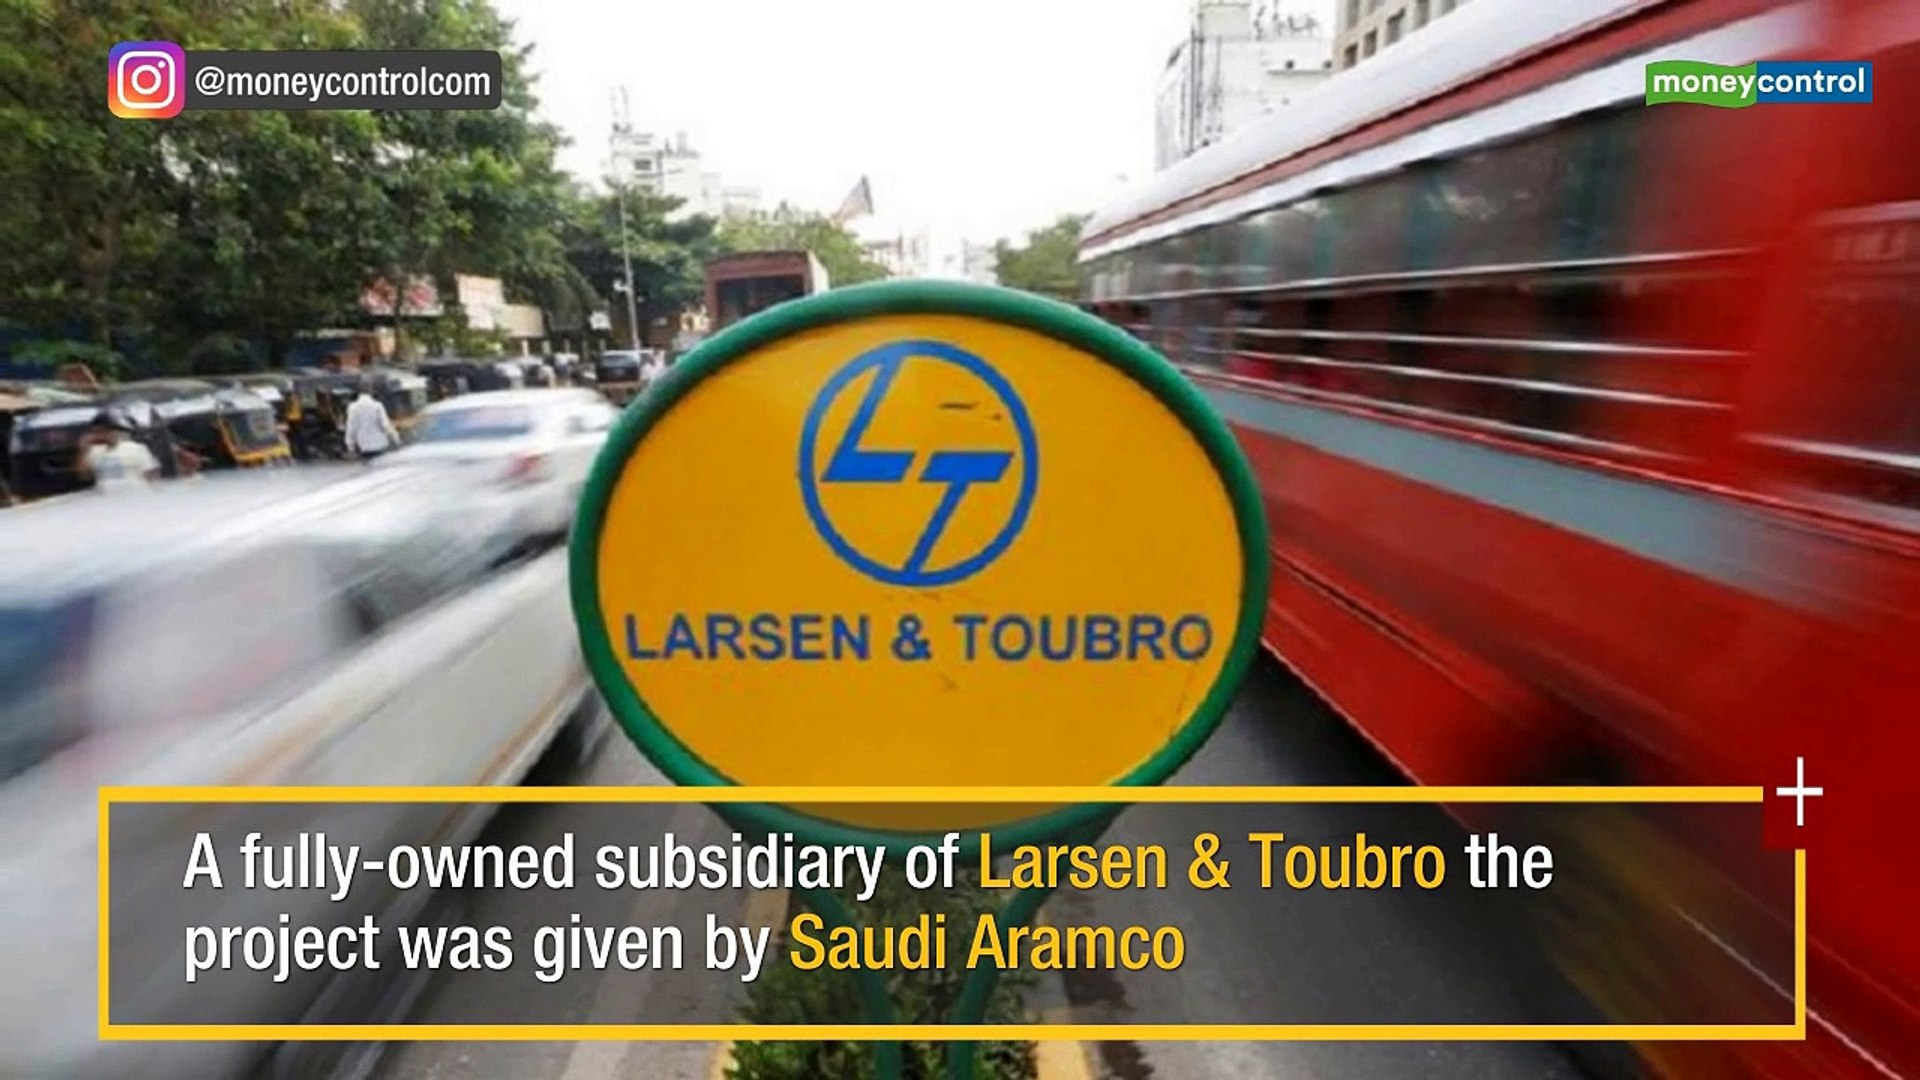 L&T Hydrocarbon Engineering bags over Rs 7,000 crore order from Saudi Aramco